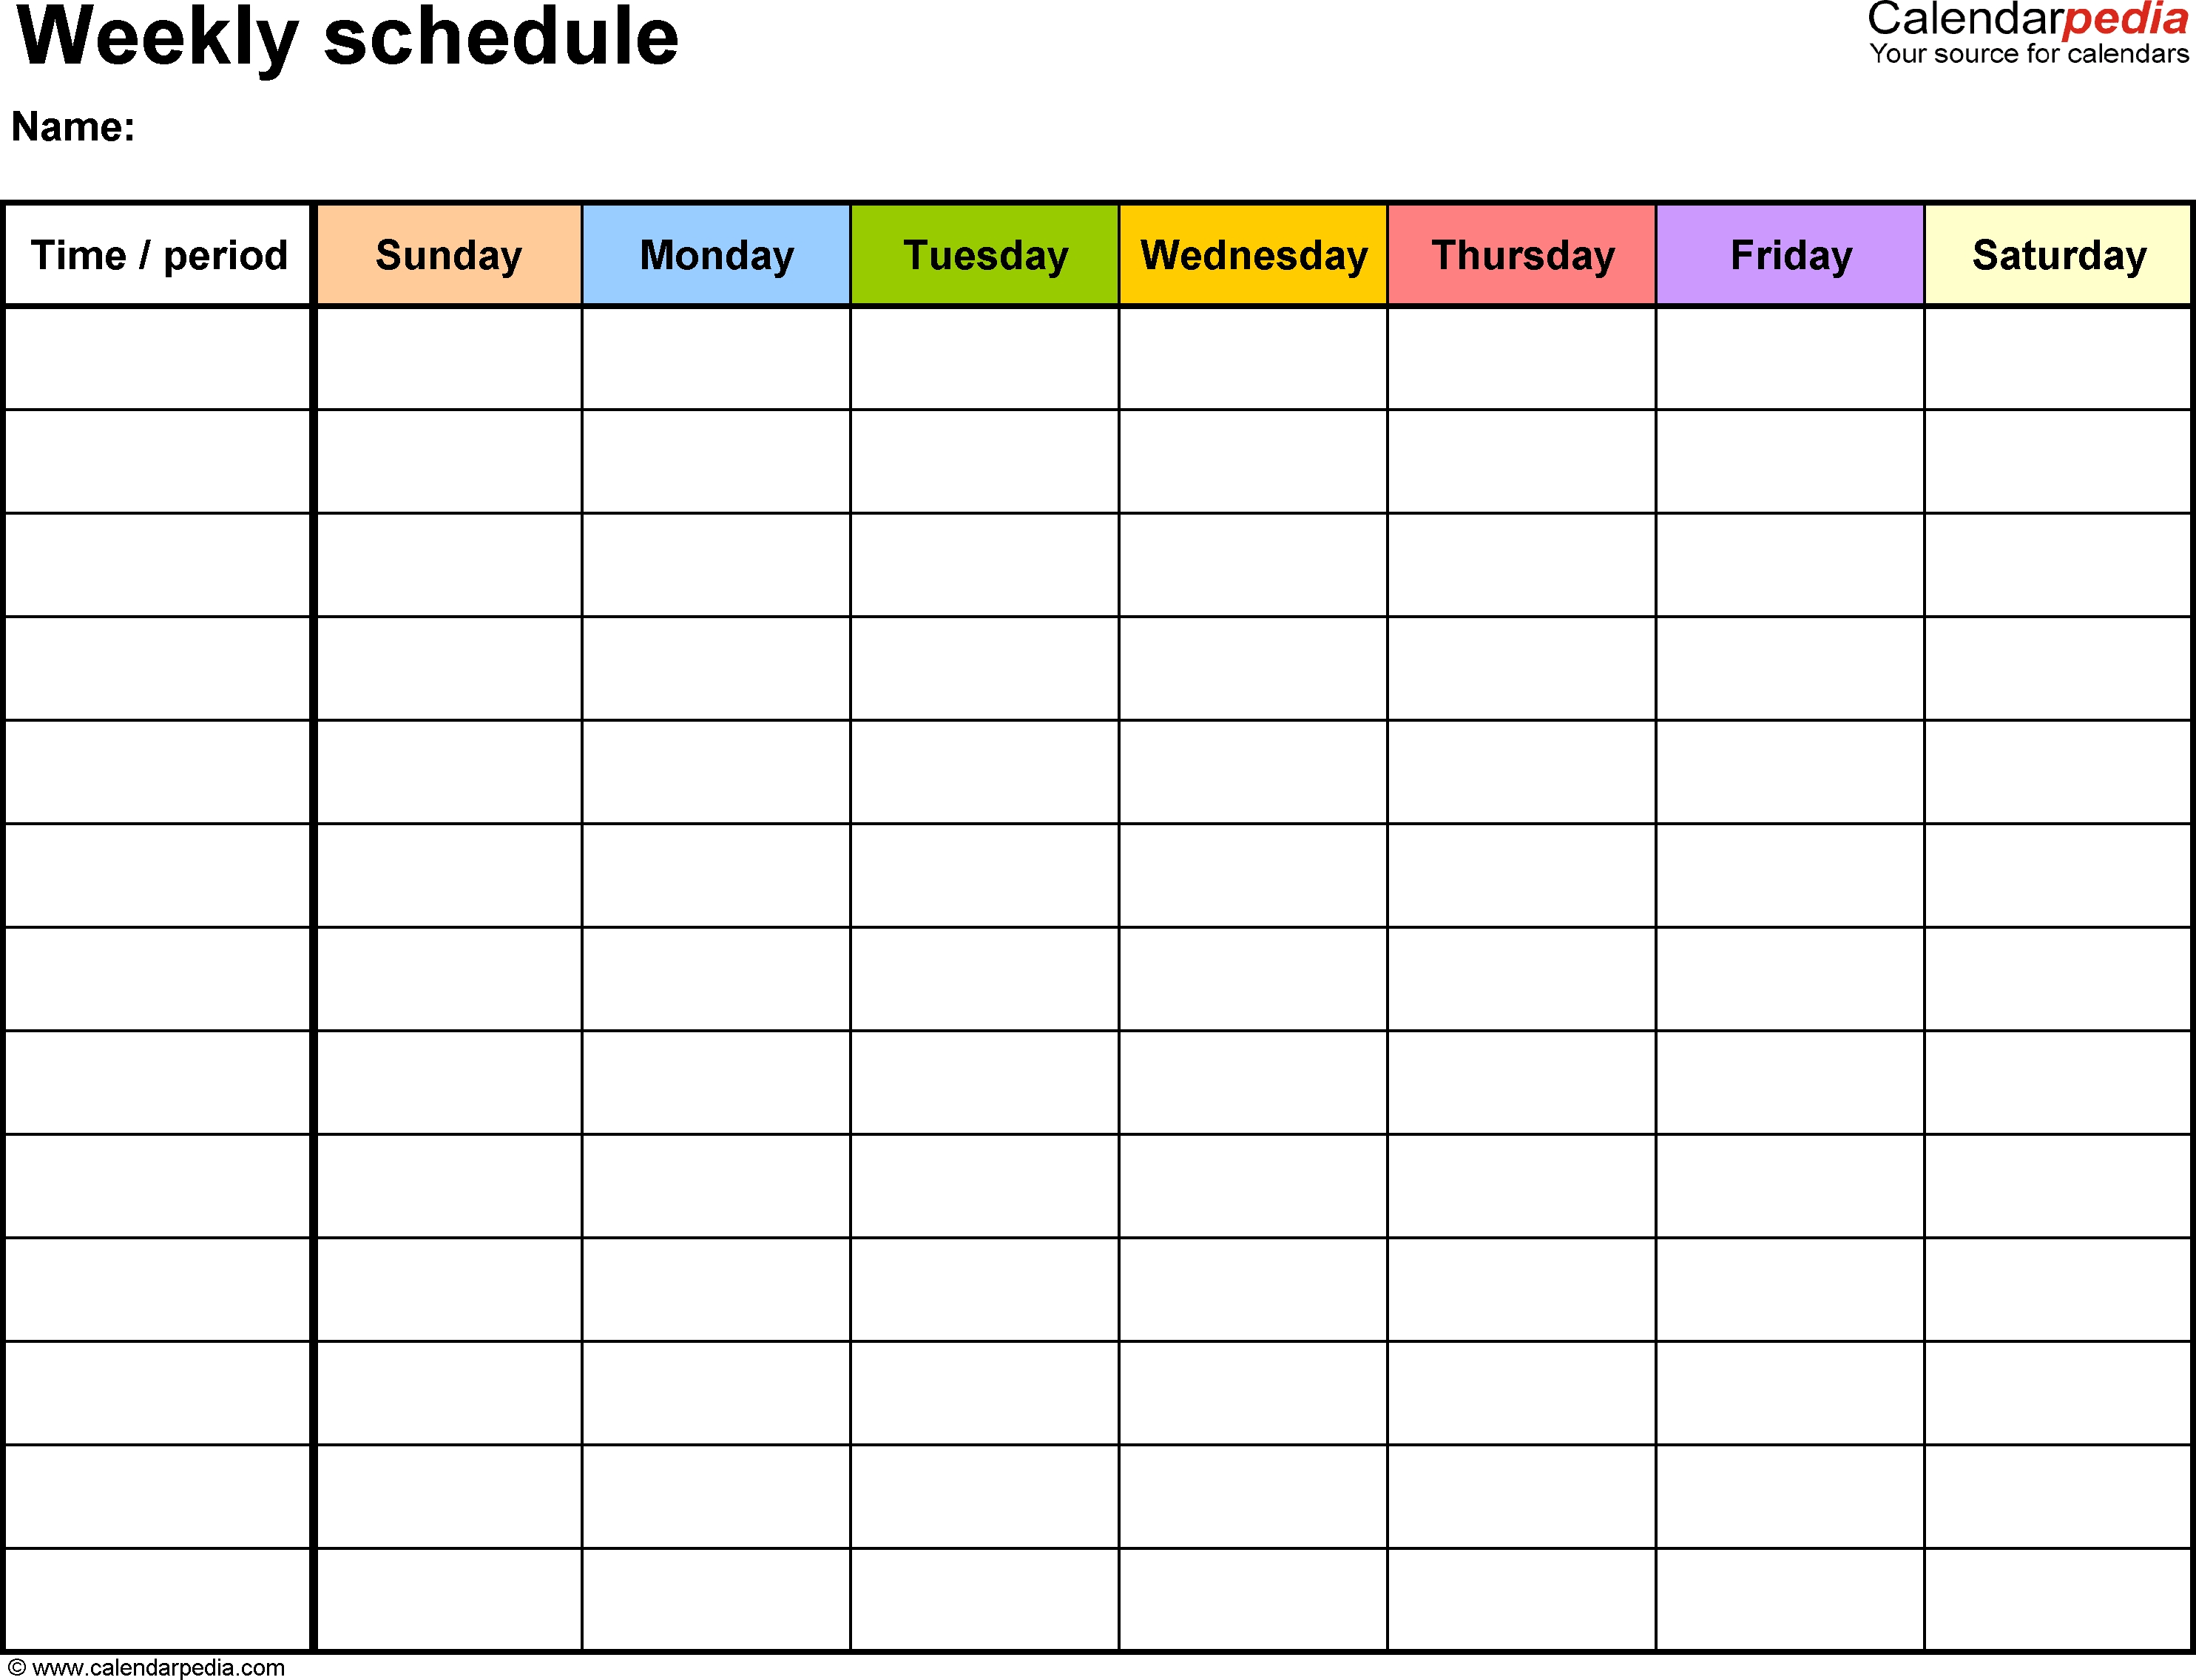 Free Weekly Schedule Templates For Excel - 18 Templates | ~Yoga regarding Free Weekly Calendar Templates Printable